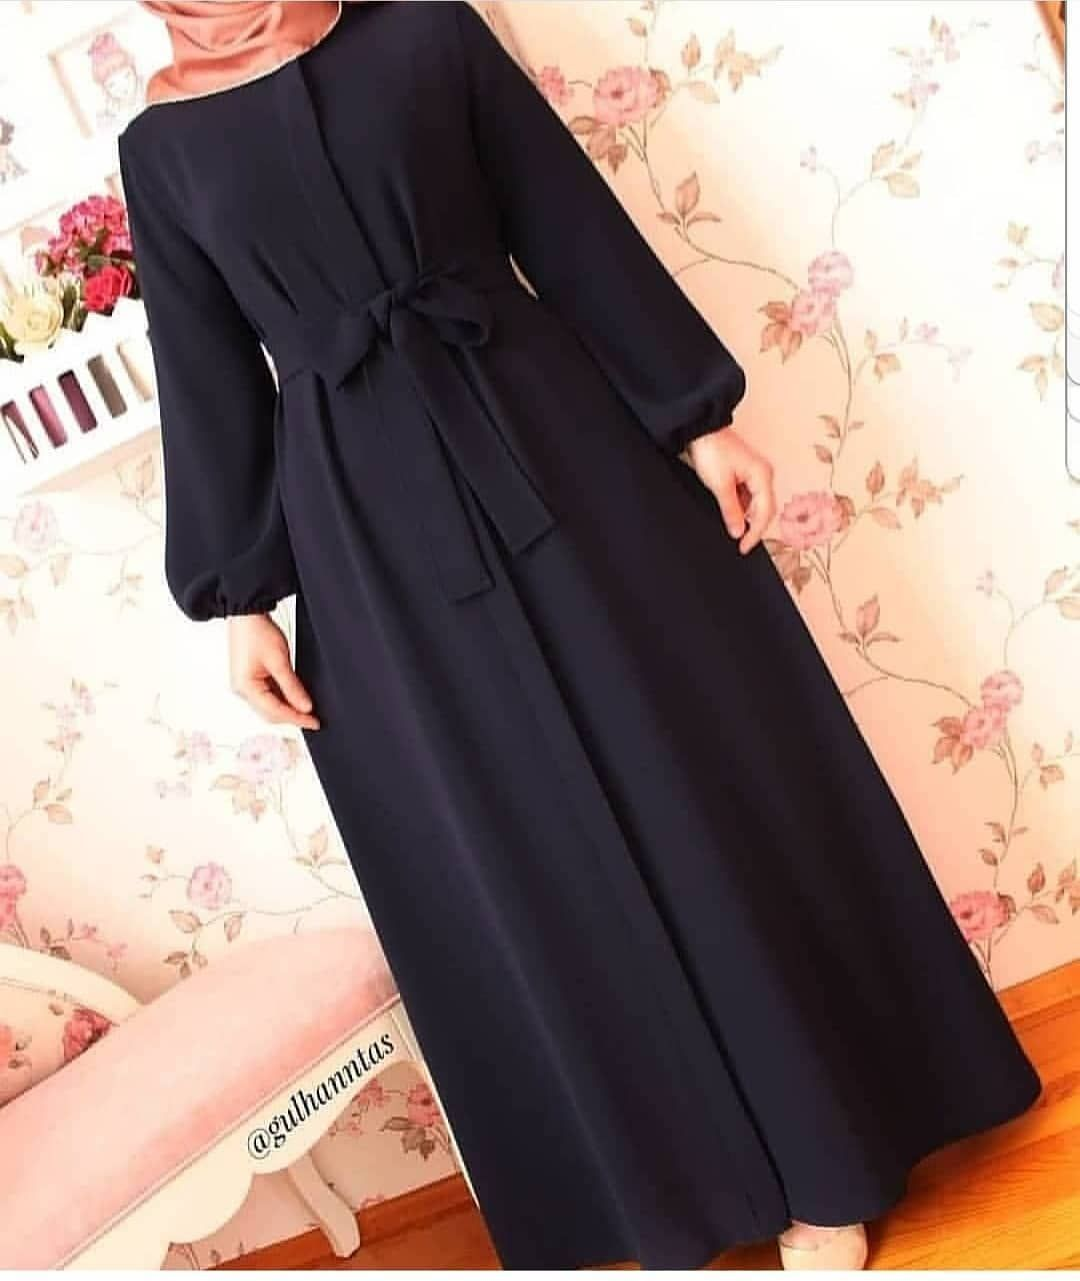 Tesettur Ic Camasir Modelleri 2020 Muslim Fashion Outfits Muslimah Fashion Outfits Muslim Women Fashion